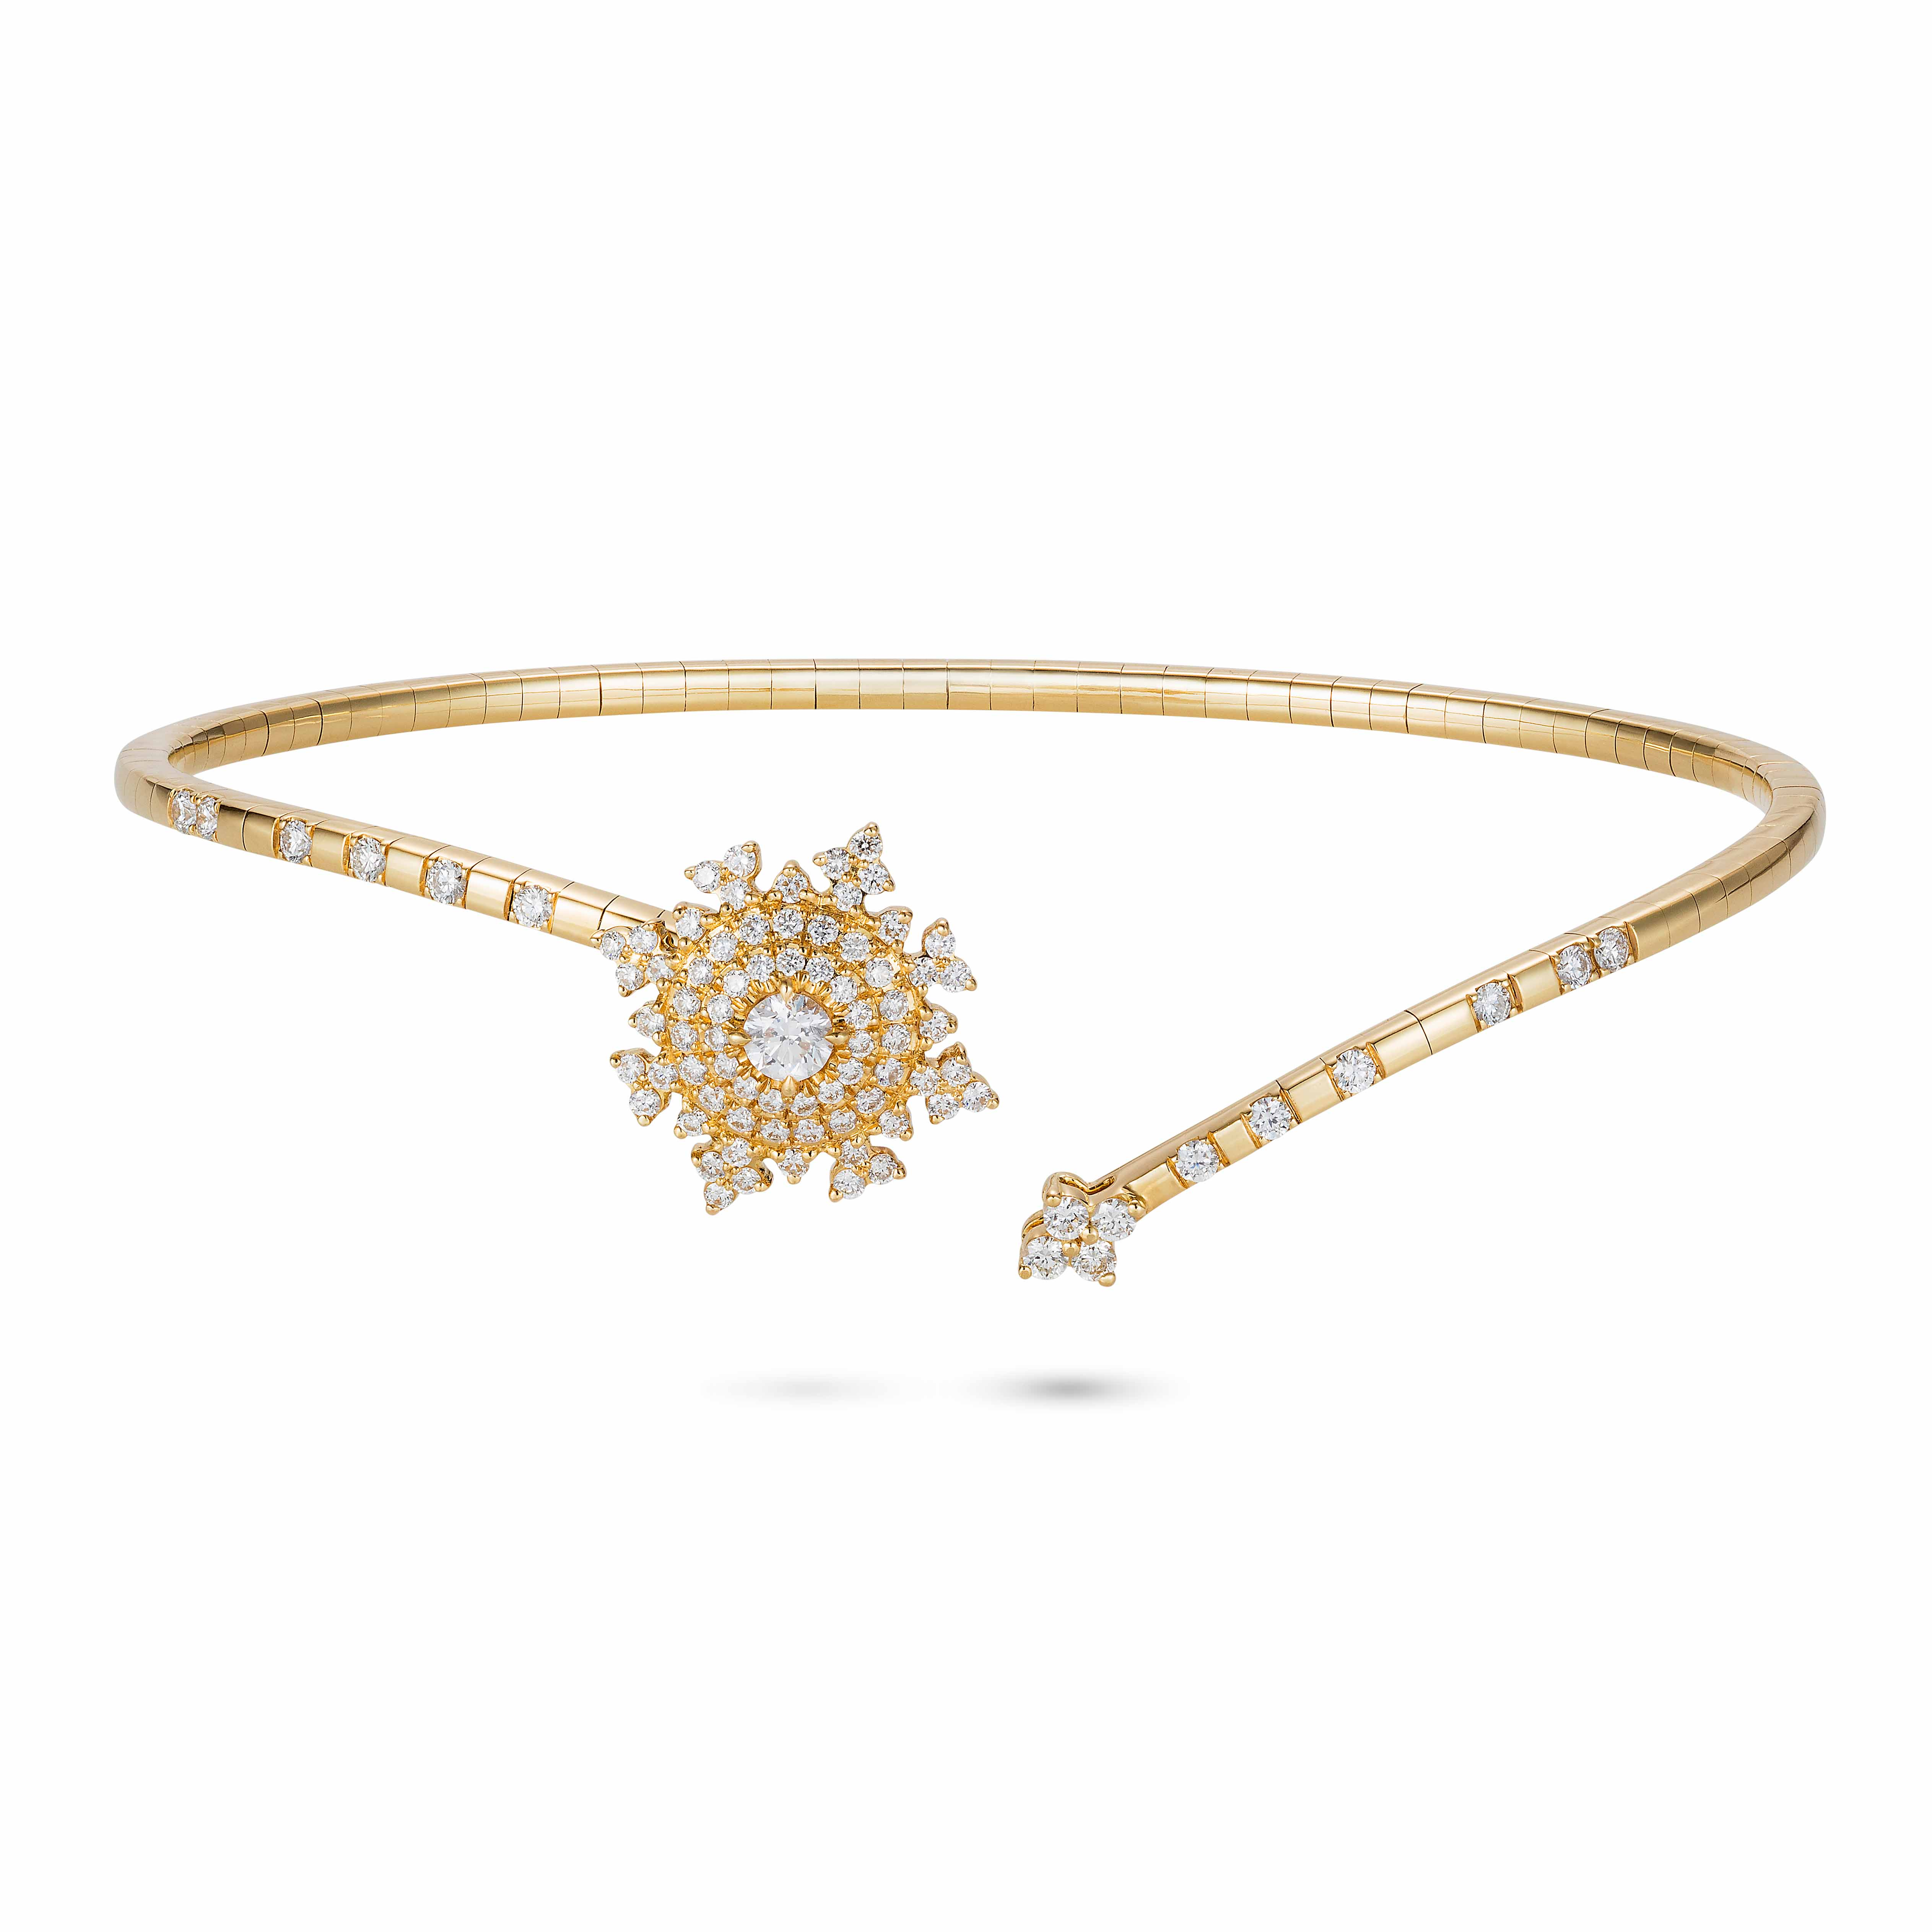 Petite Tsarina Yellow Bracelet by Nadine Aysoy on curated-crowd.com